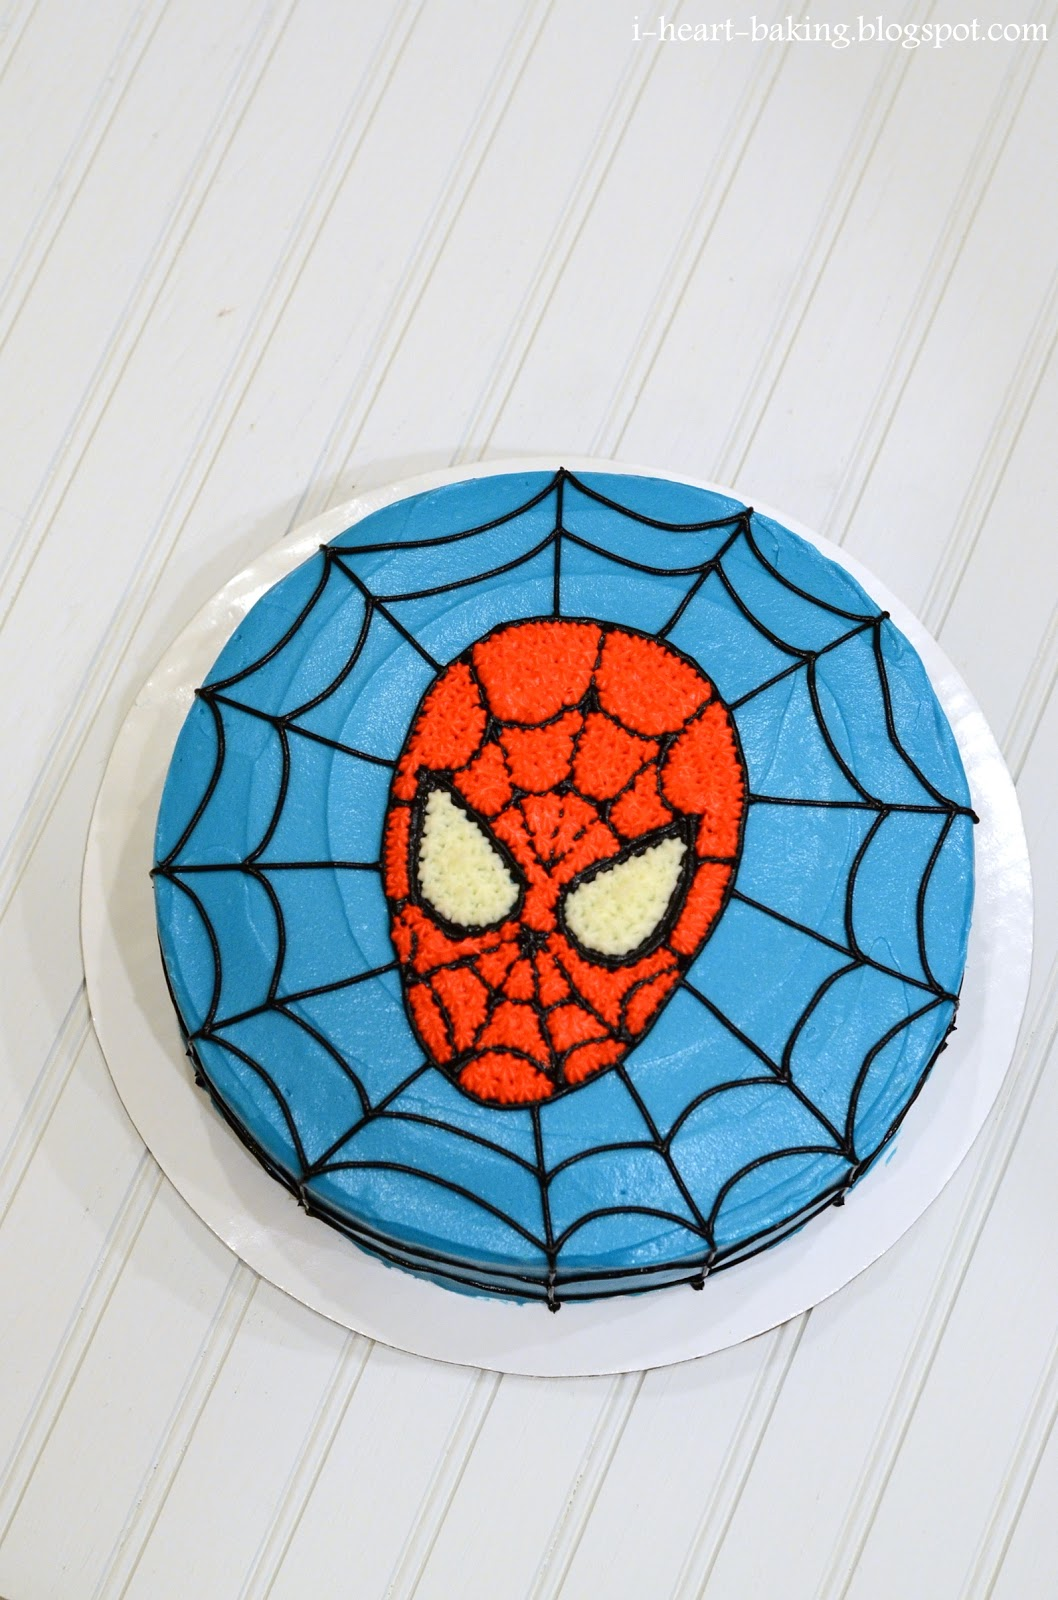 i heart baking!: spiderman birthday cake